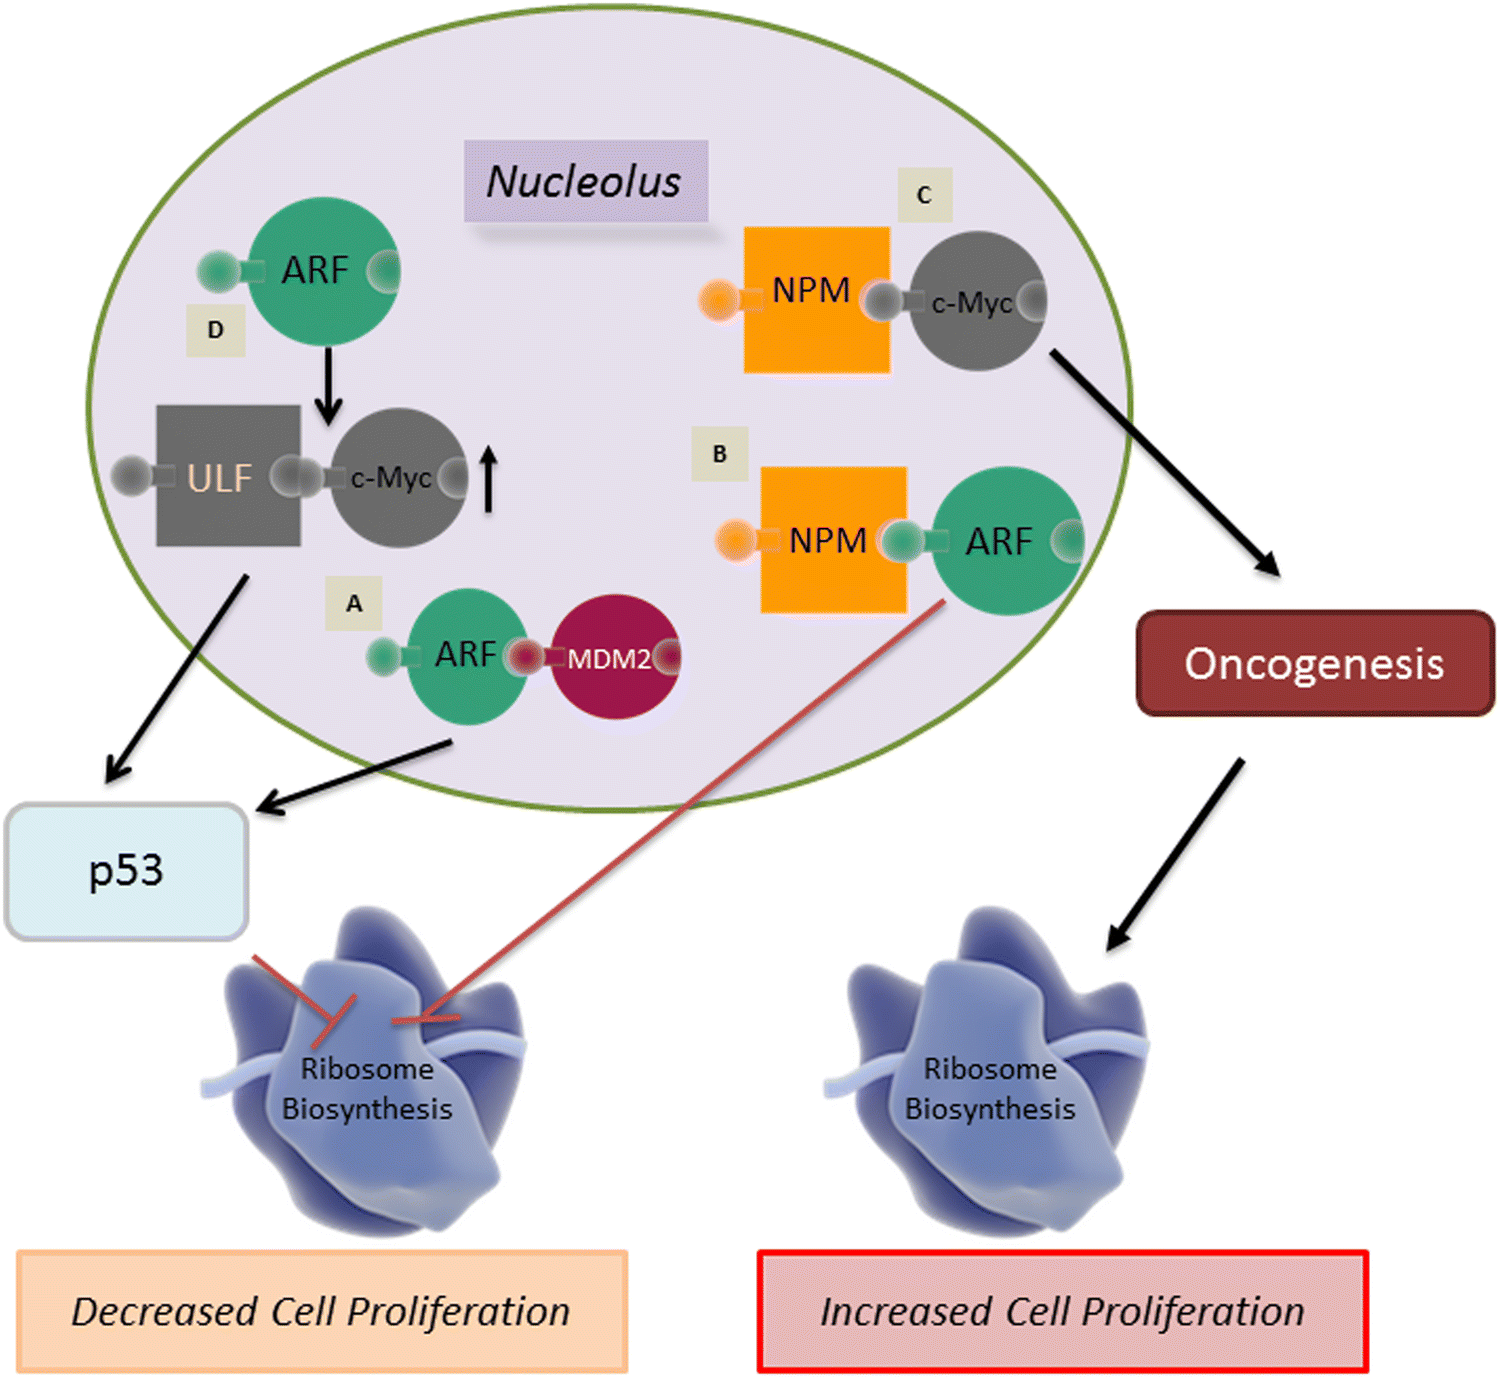 The nucleolus: a central response hub for the stressors that